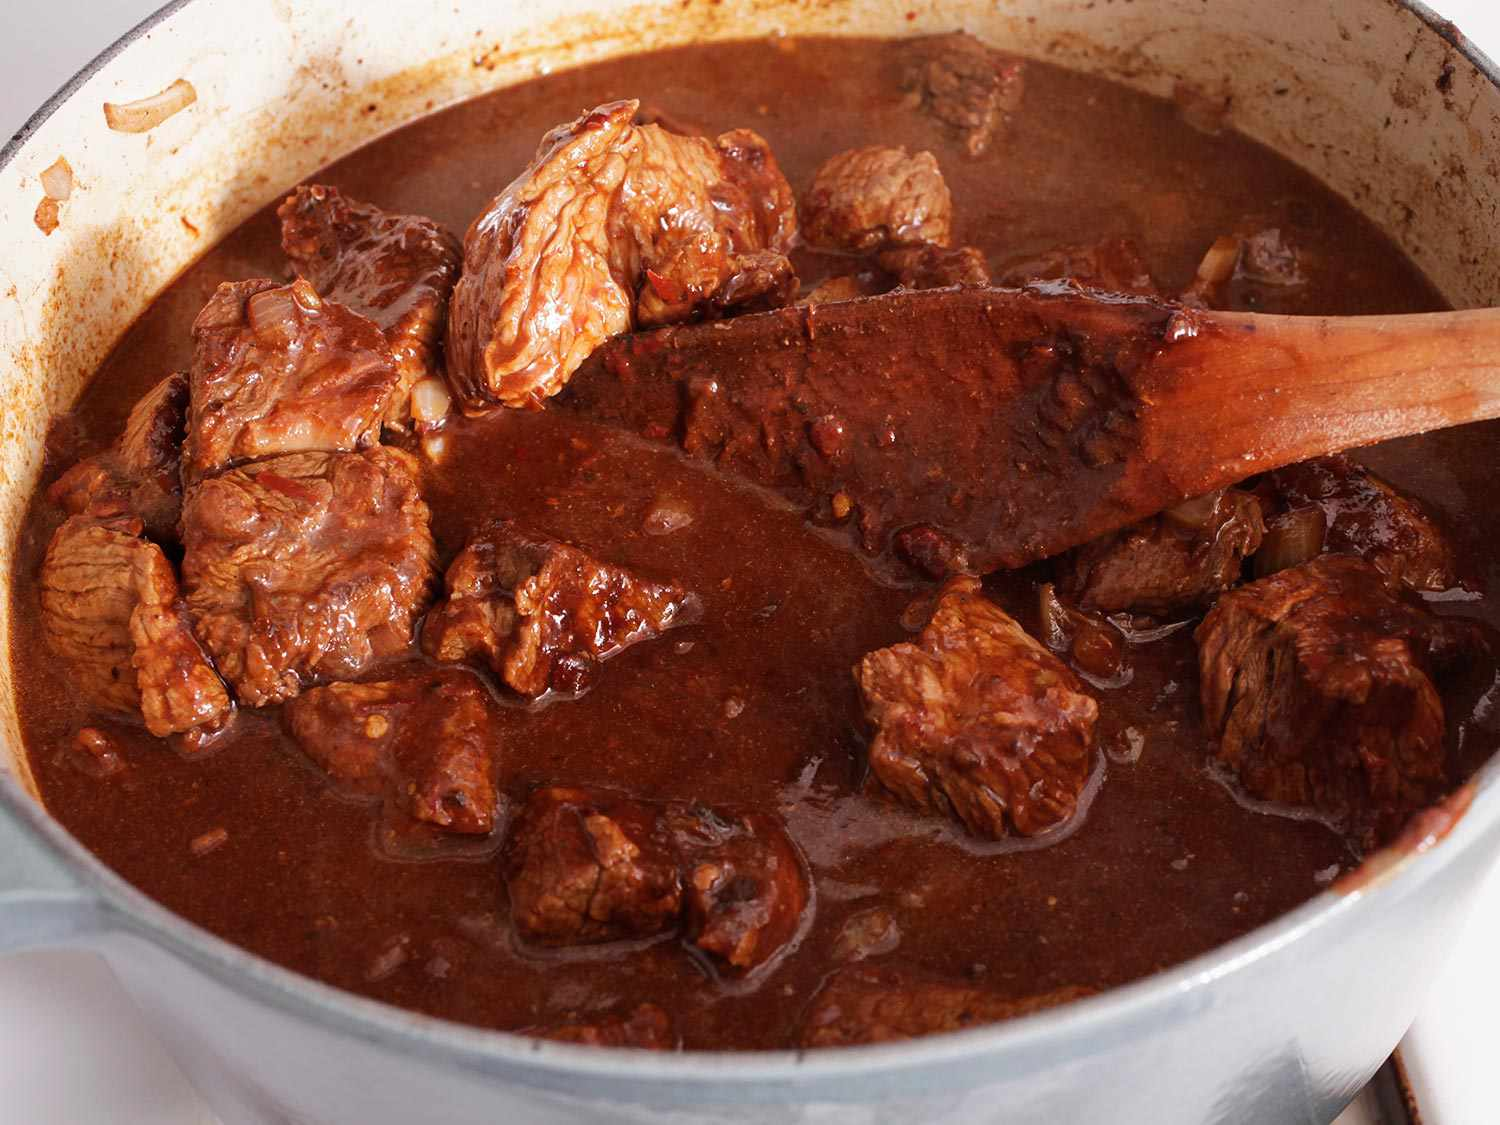 20160209-stew-science-stew-with-age-chili.jpg